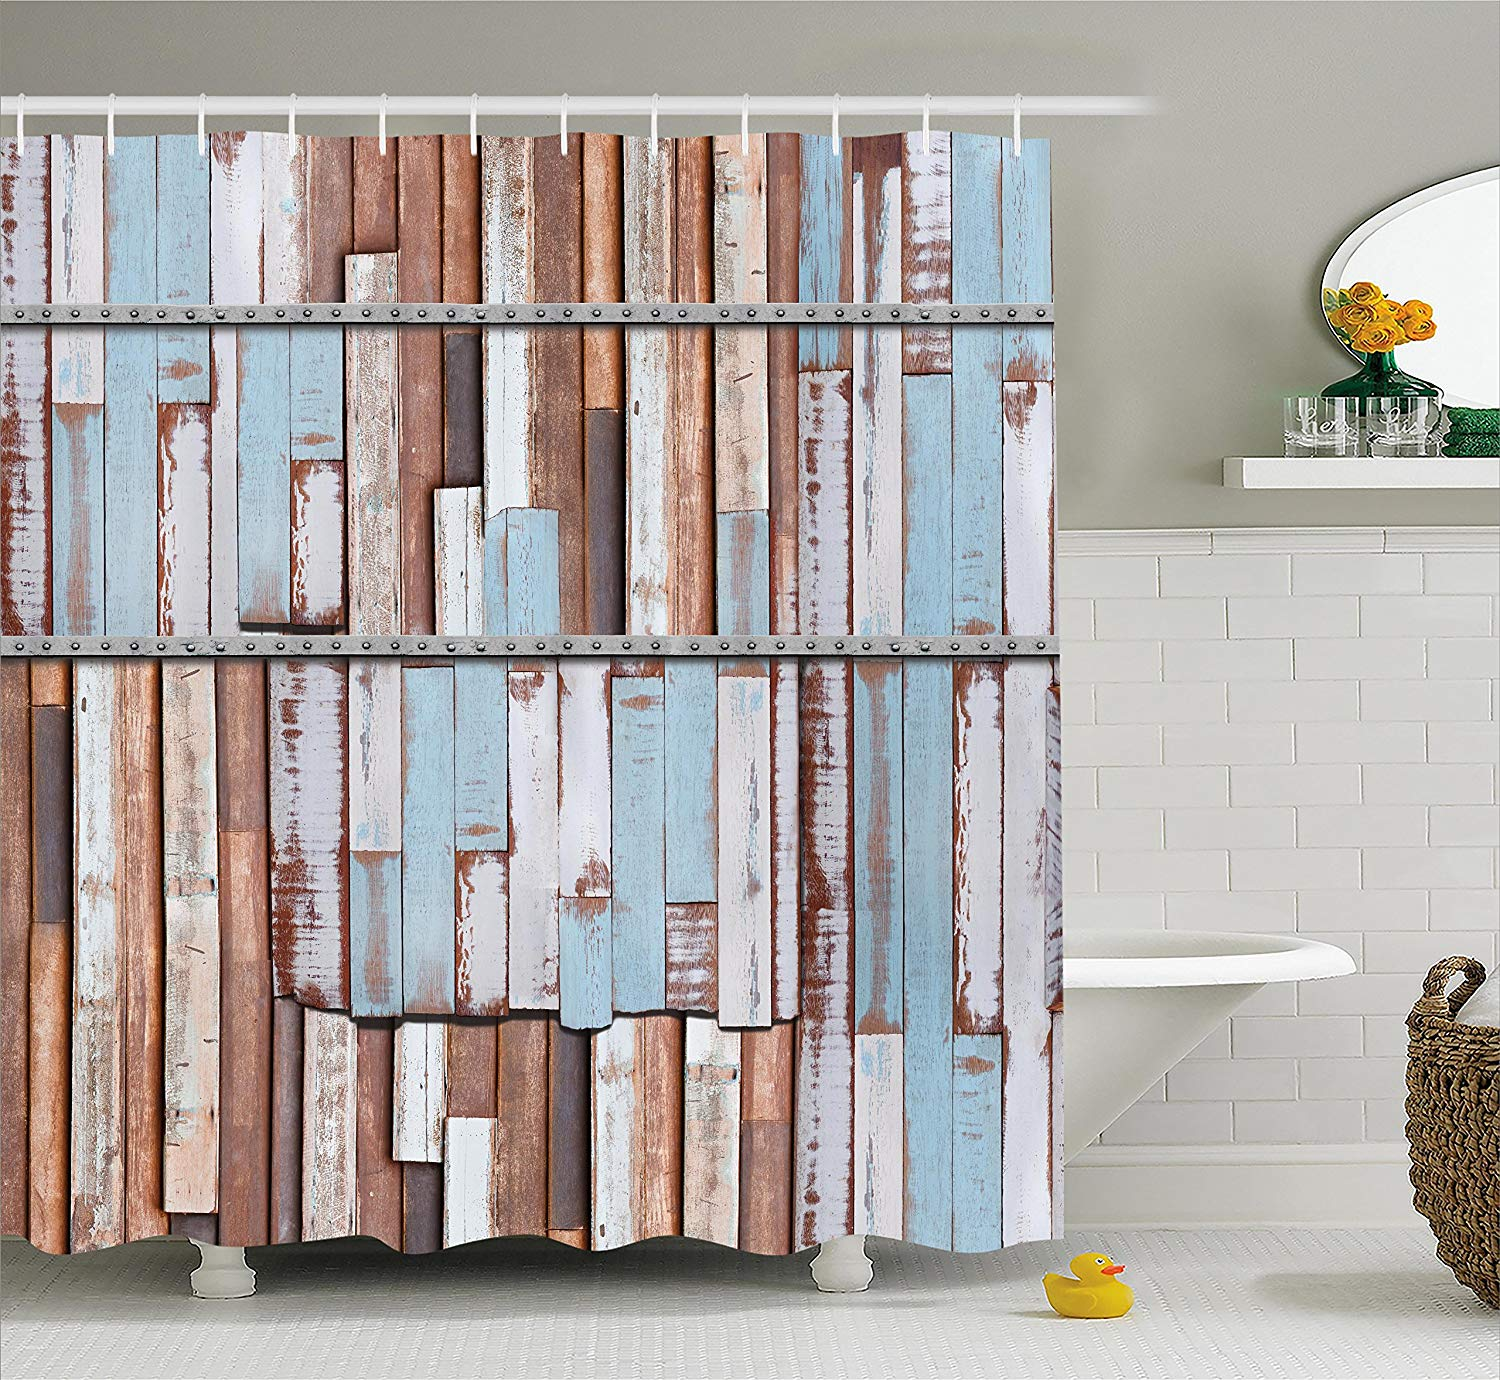 Get quotations · ambesonne rustic decor shower curtain long wooden planks tree designs on with rusty metal screws